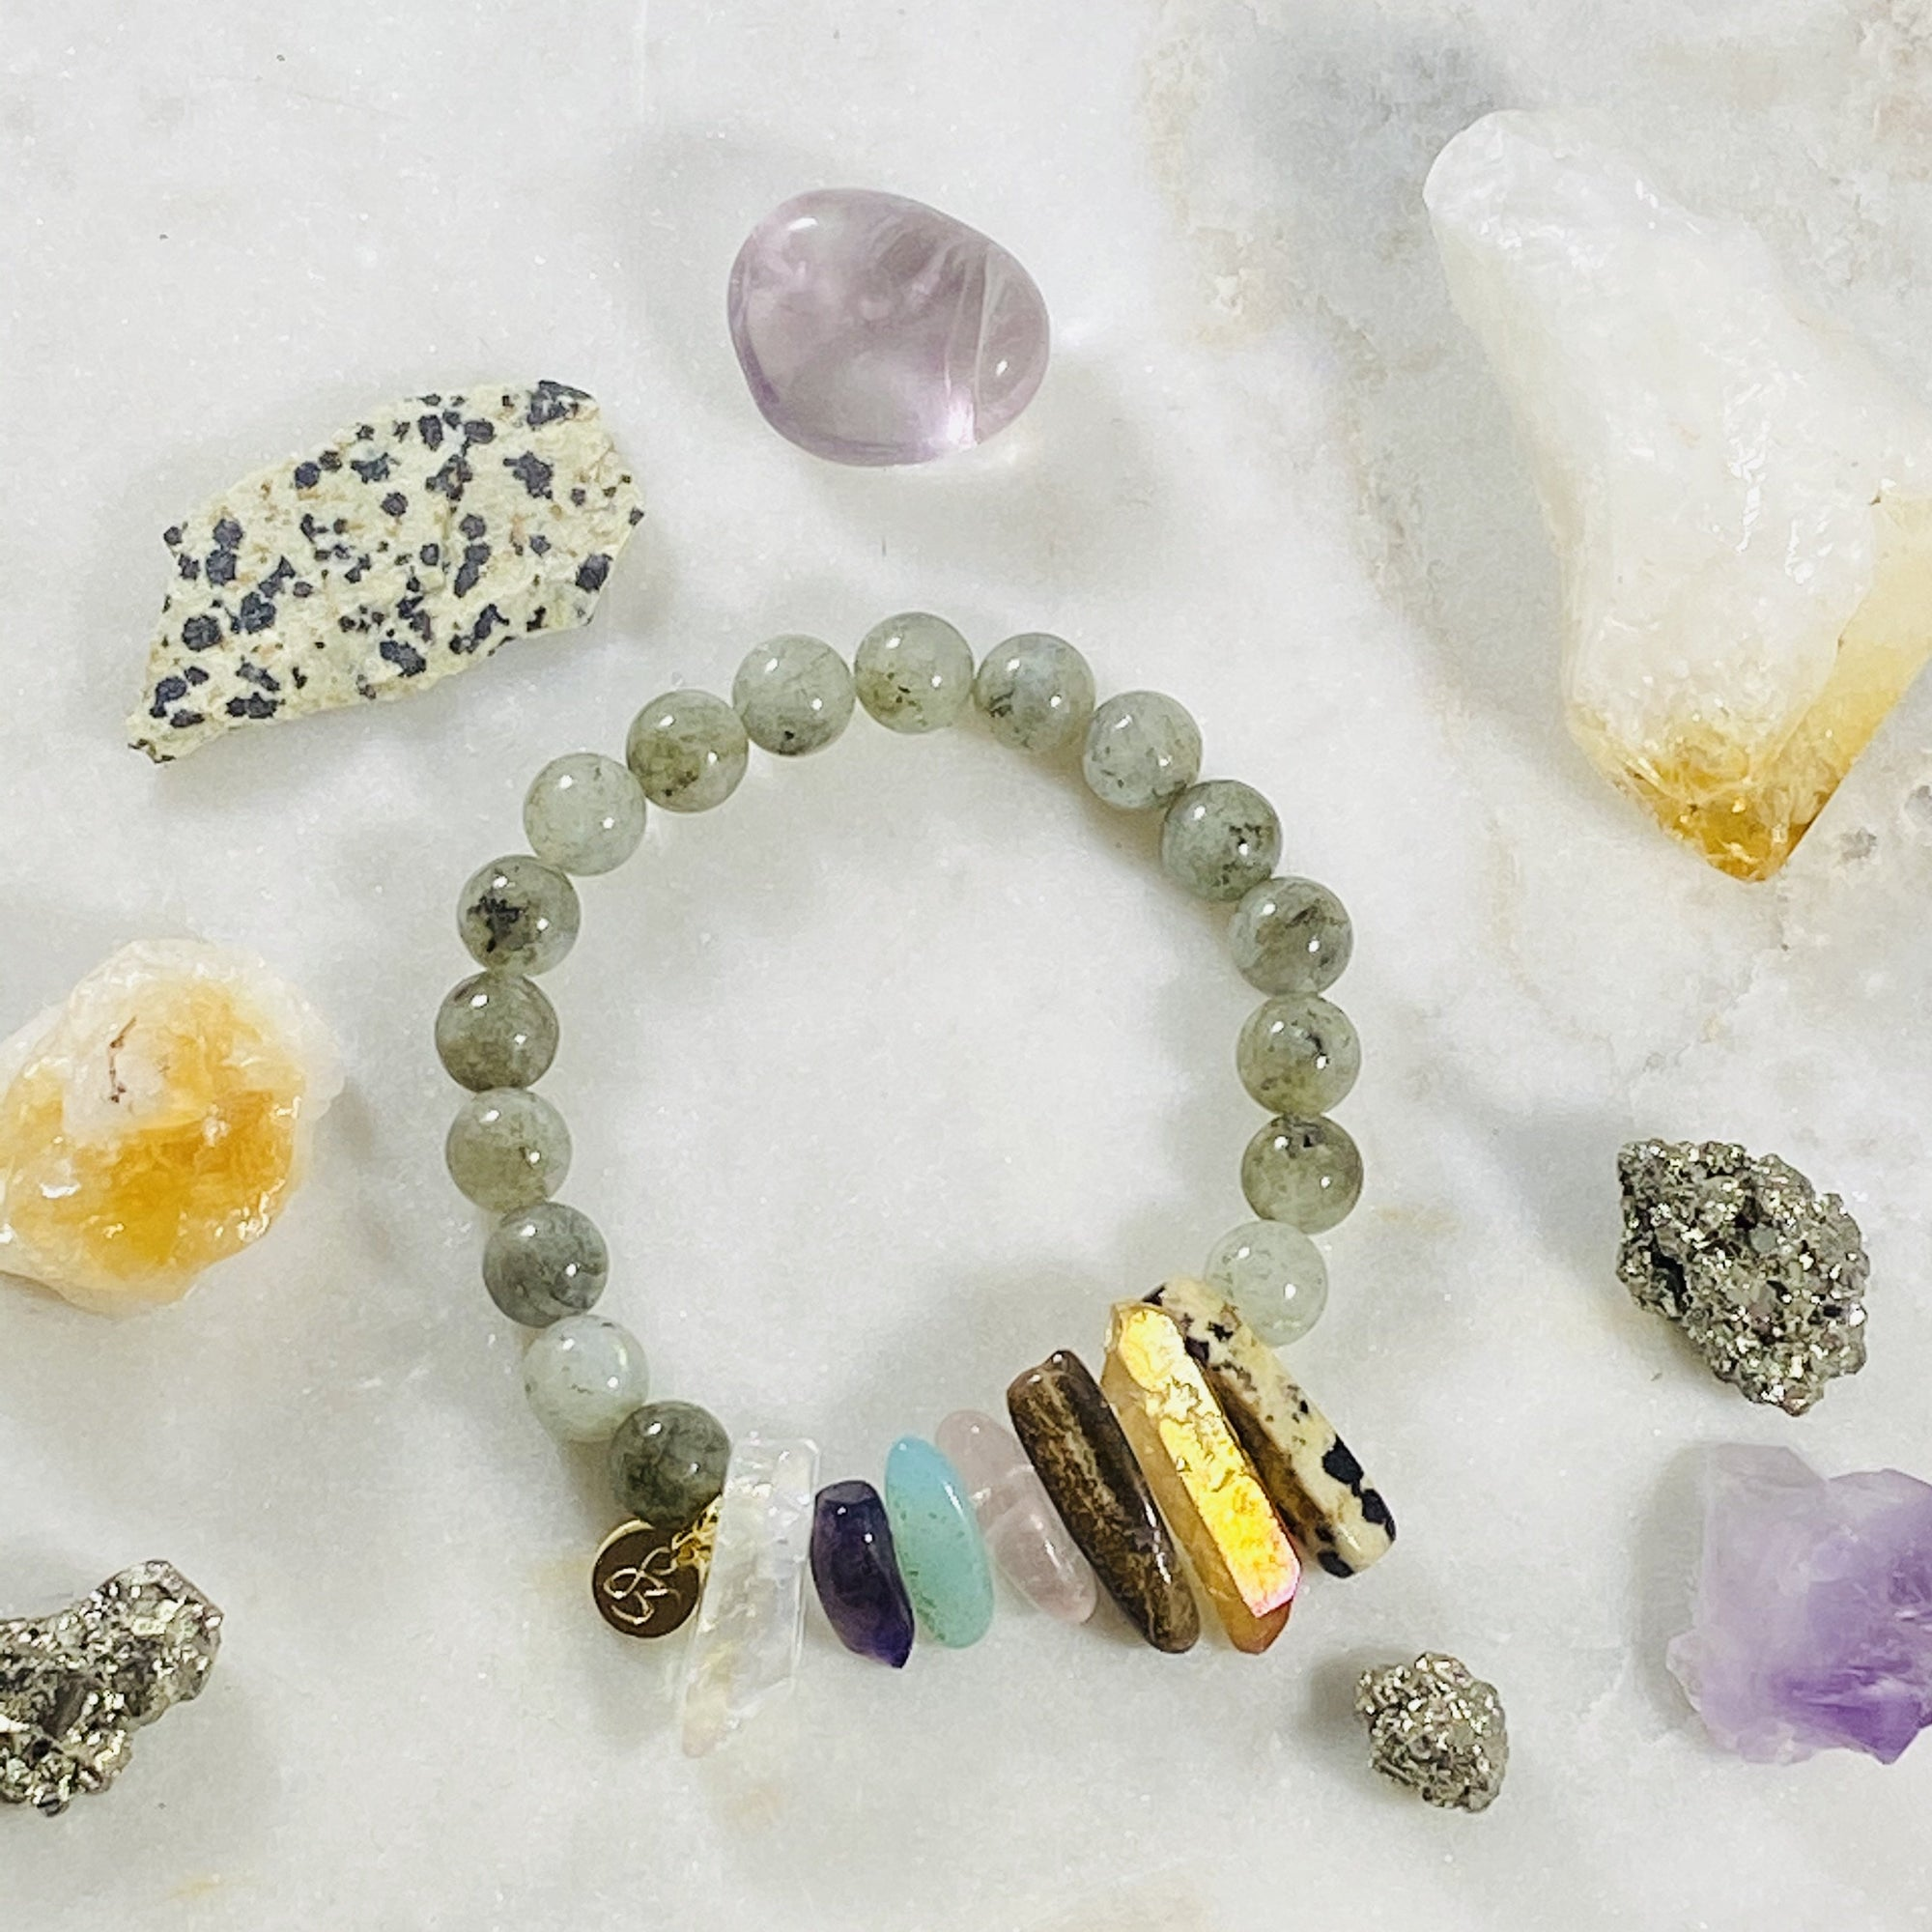 Modern chakra bracelet for supporting the energy centers with crystal healing